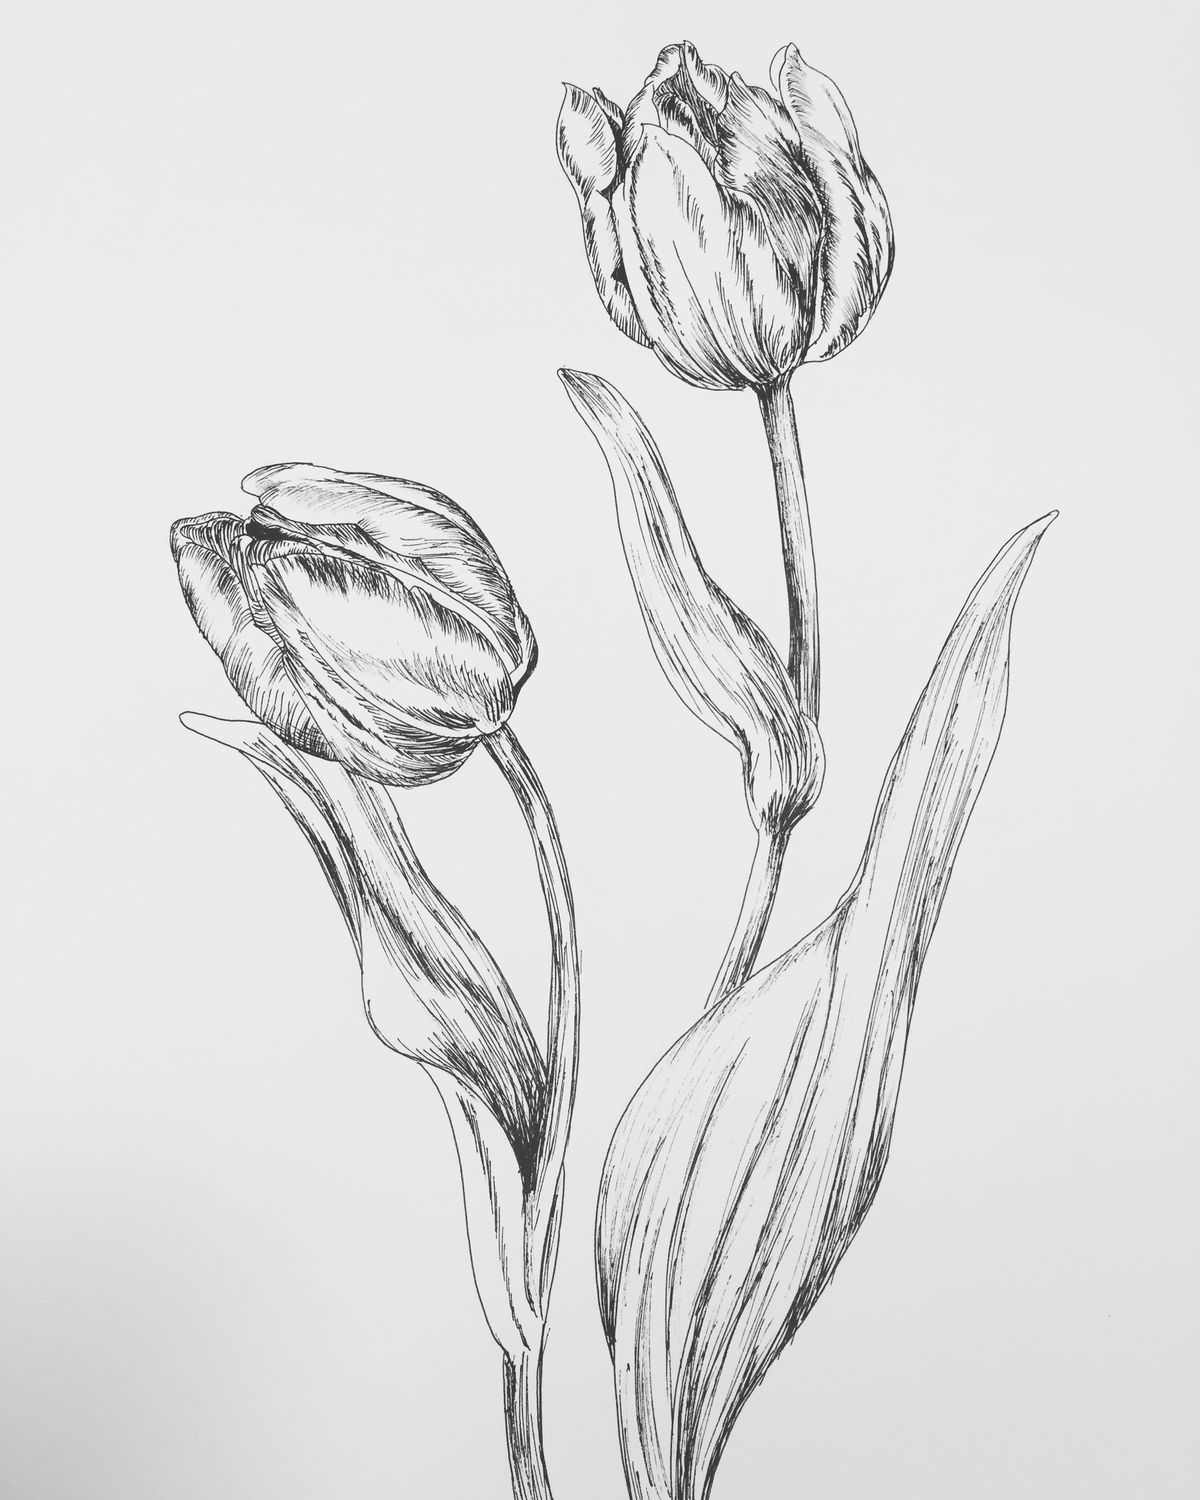 Pin By Maxie Jingles On December Ink Flowers Doodles 2020 Realistic Flower Drawing Flower Line Drawings Tulip Drawing